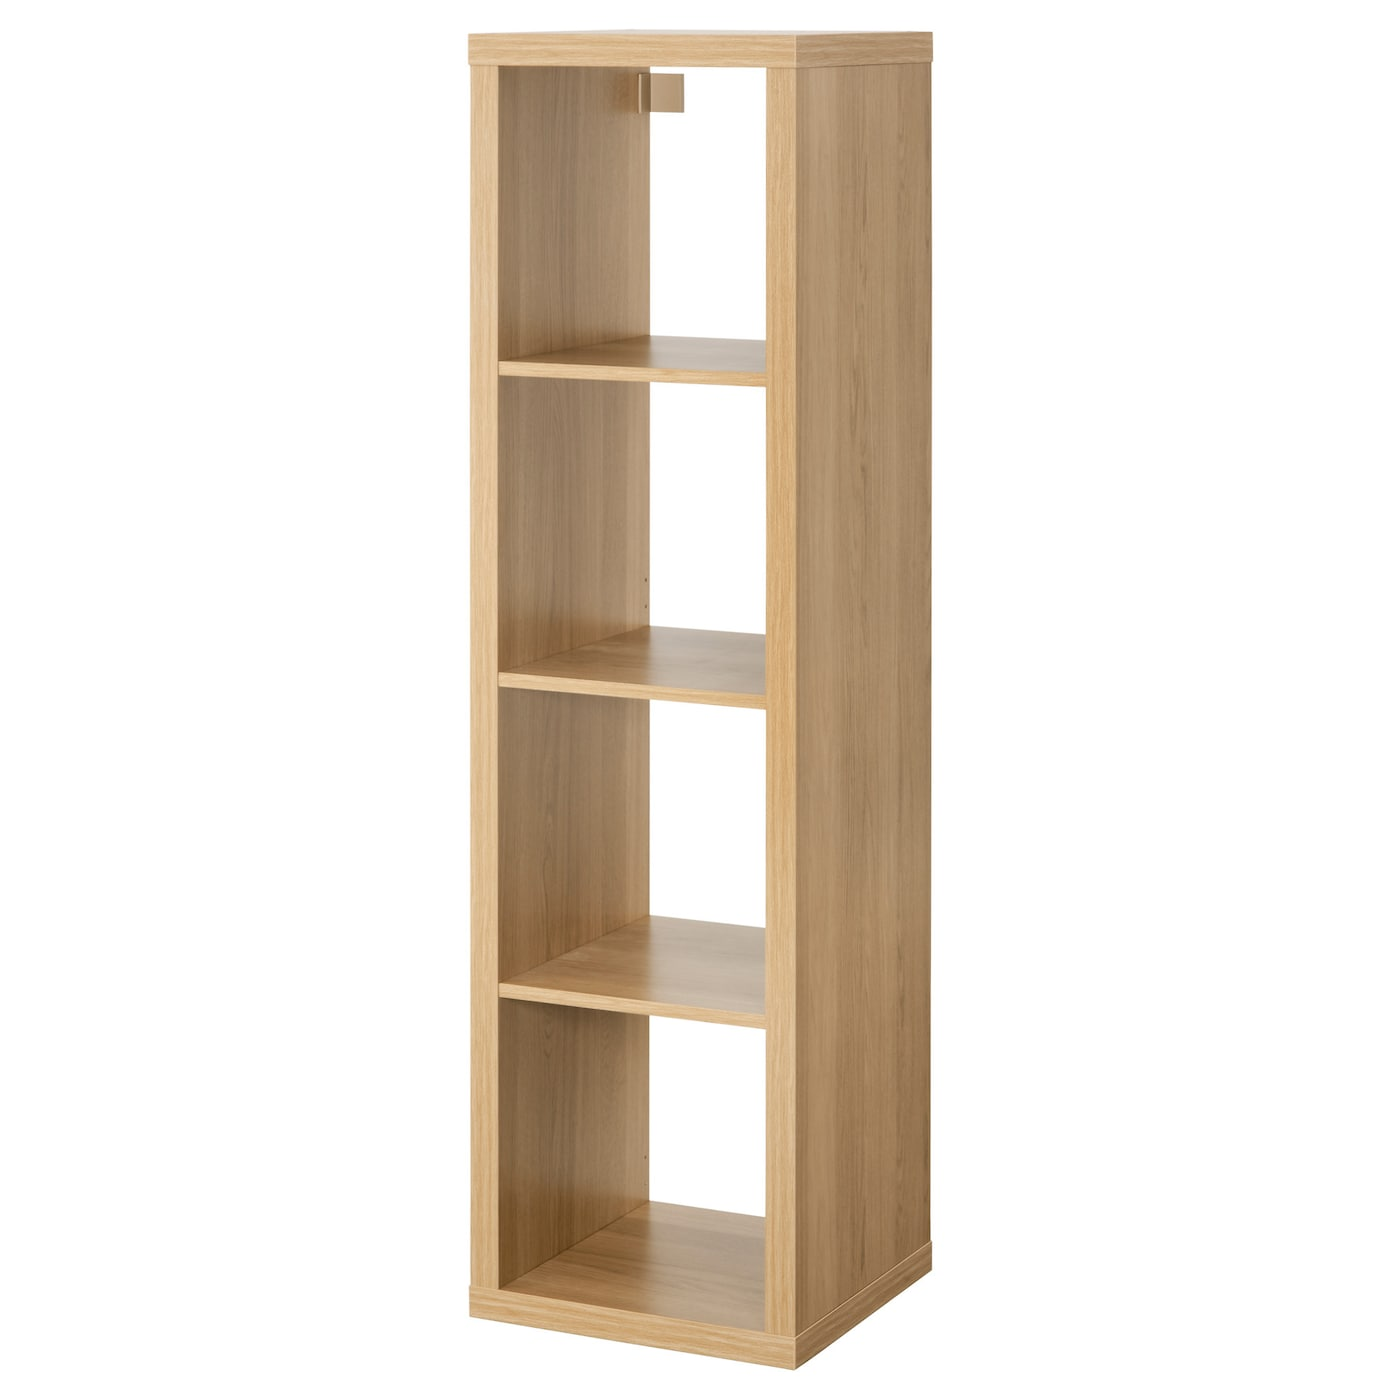 kallax shelving unit oak effect 42 x 147 cm ikea. Black Bedroom Furniture Sets. Home Design Ideas